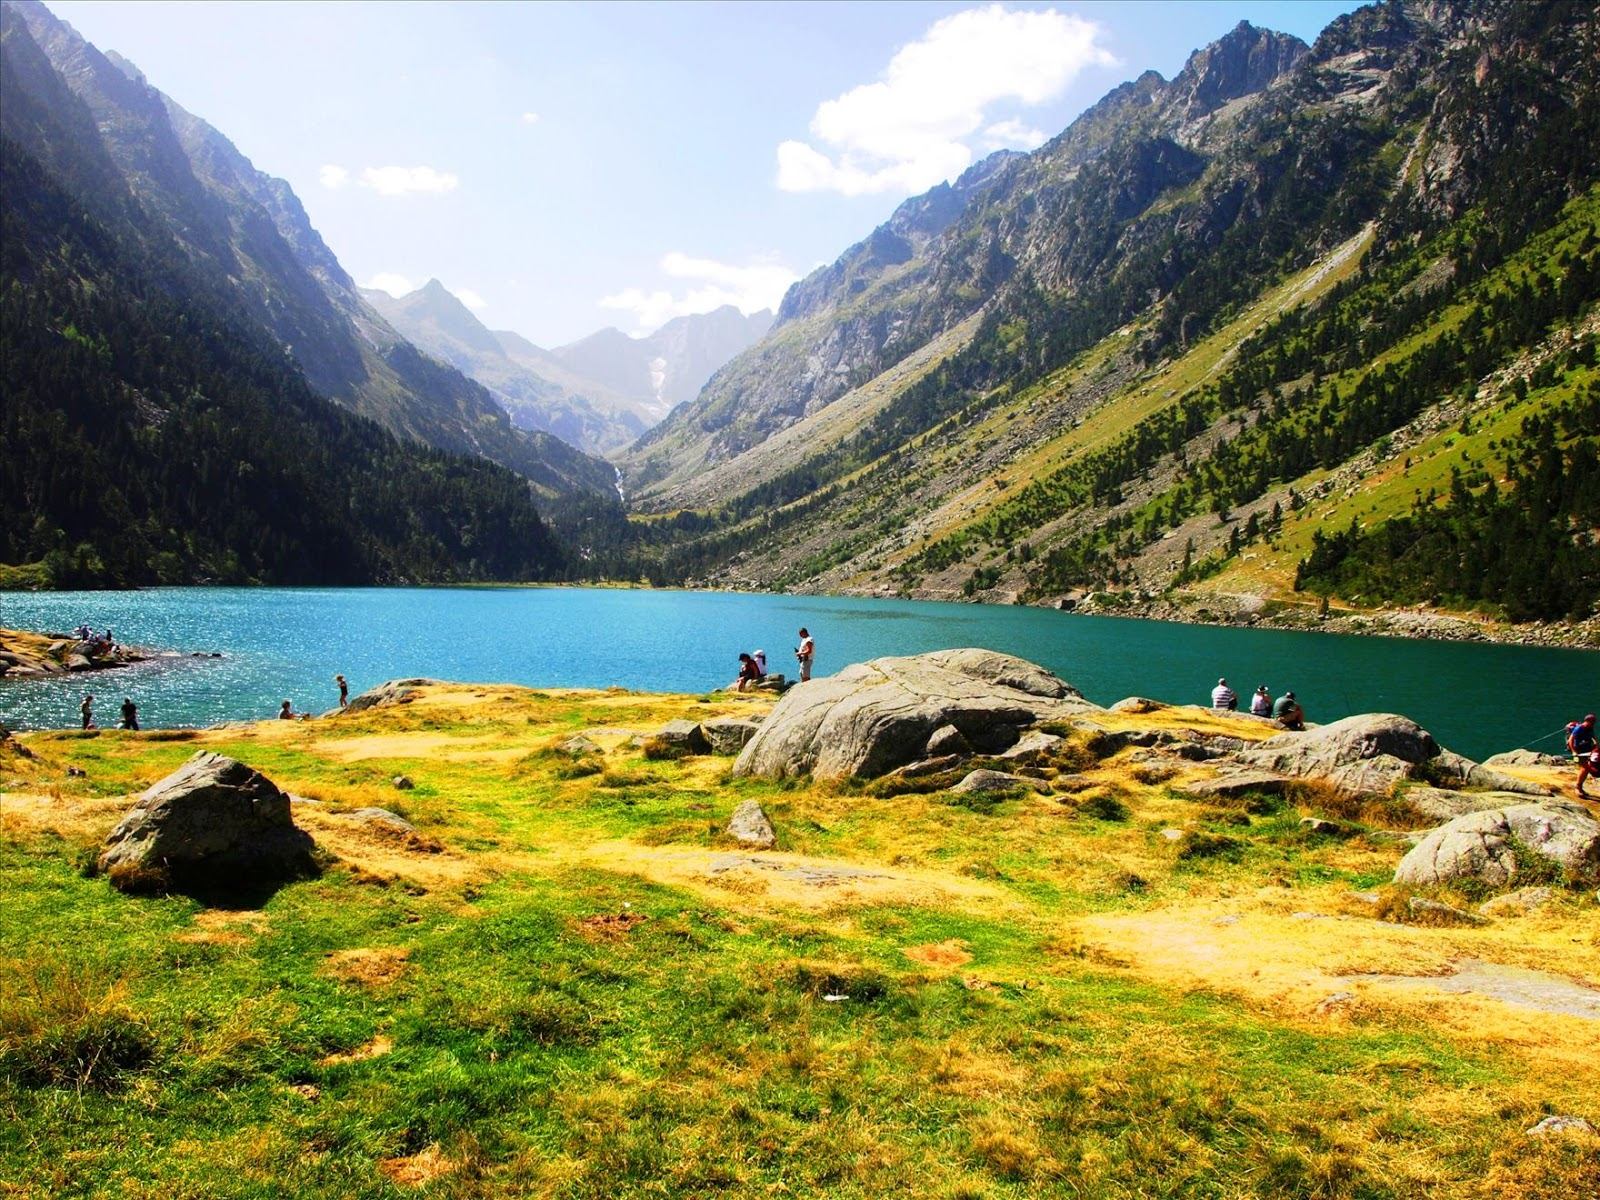 Best pyrenees photos haute pyrennees lac de gaube pont d espagne france